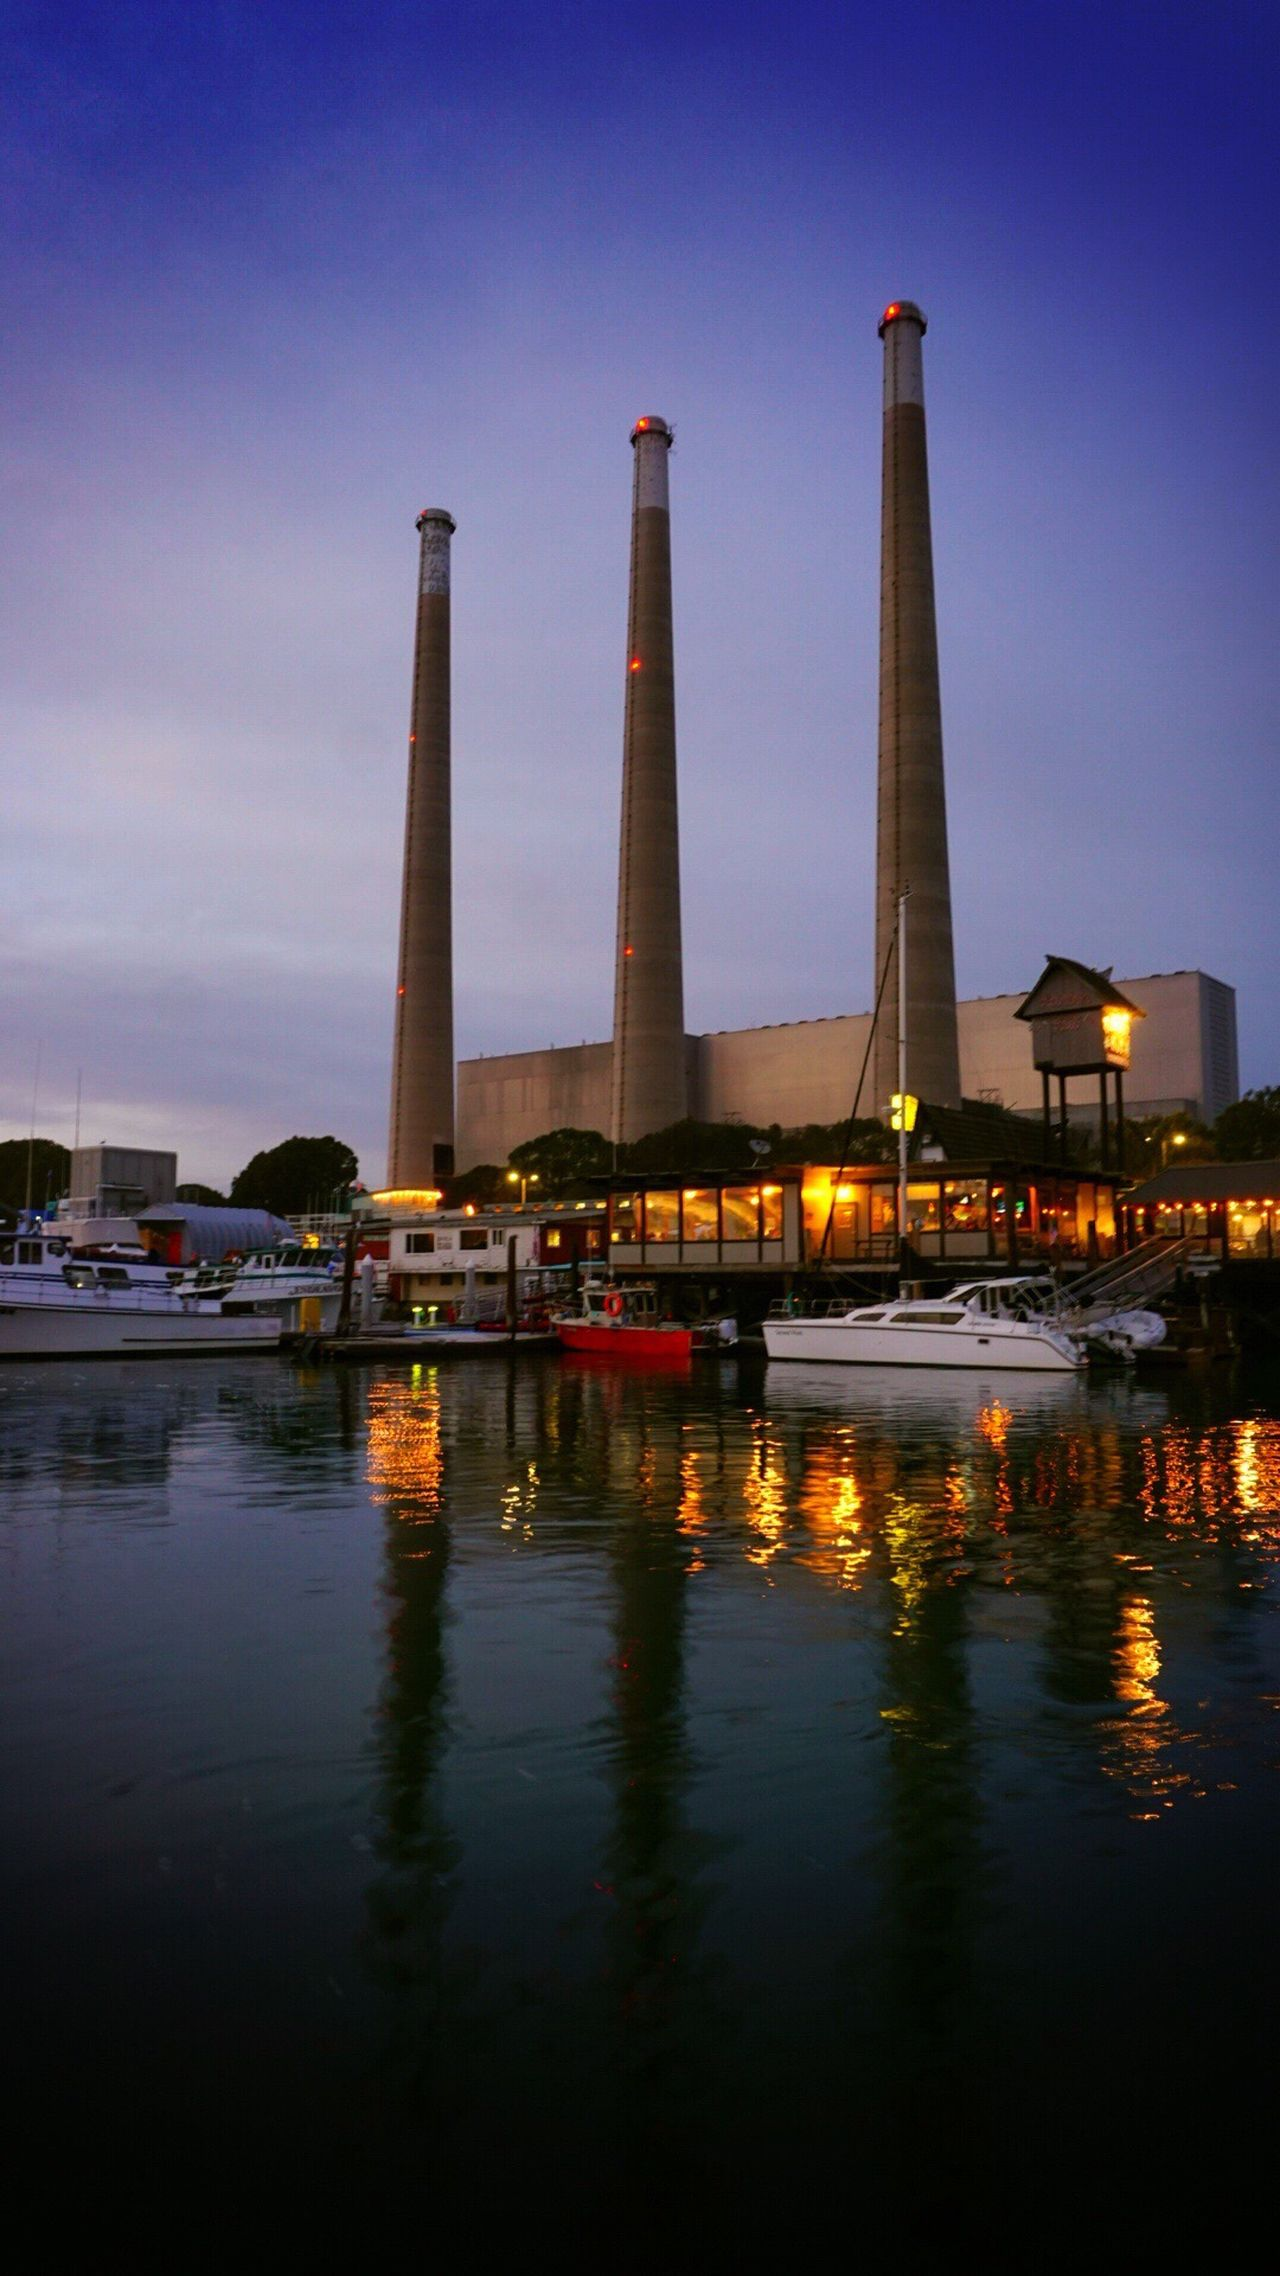 Reflection Sunset Water Sky Built Structure Architecture Waterfront Outdoors No People City Day Morro Bay, California Morro Bay Energy Plant Ocean Morro Bay Morro Bay, Ca The City Light